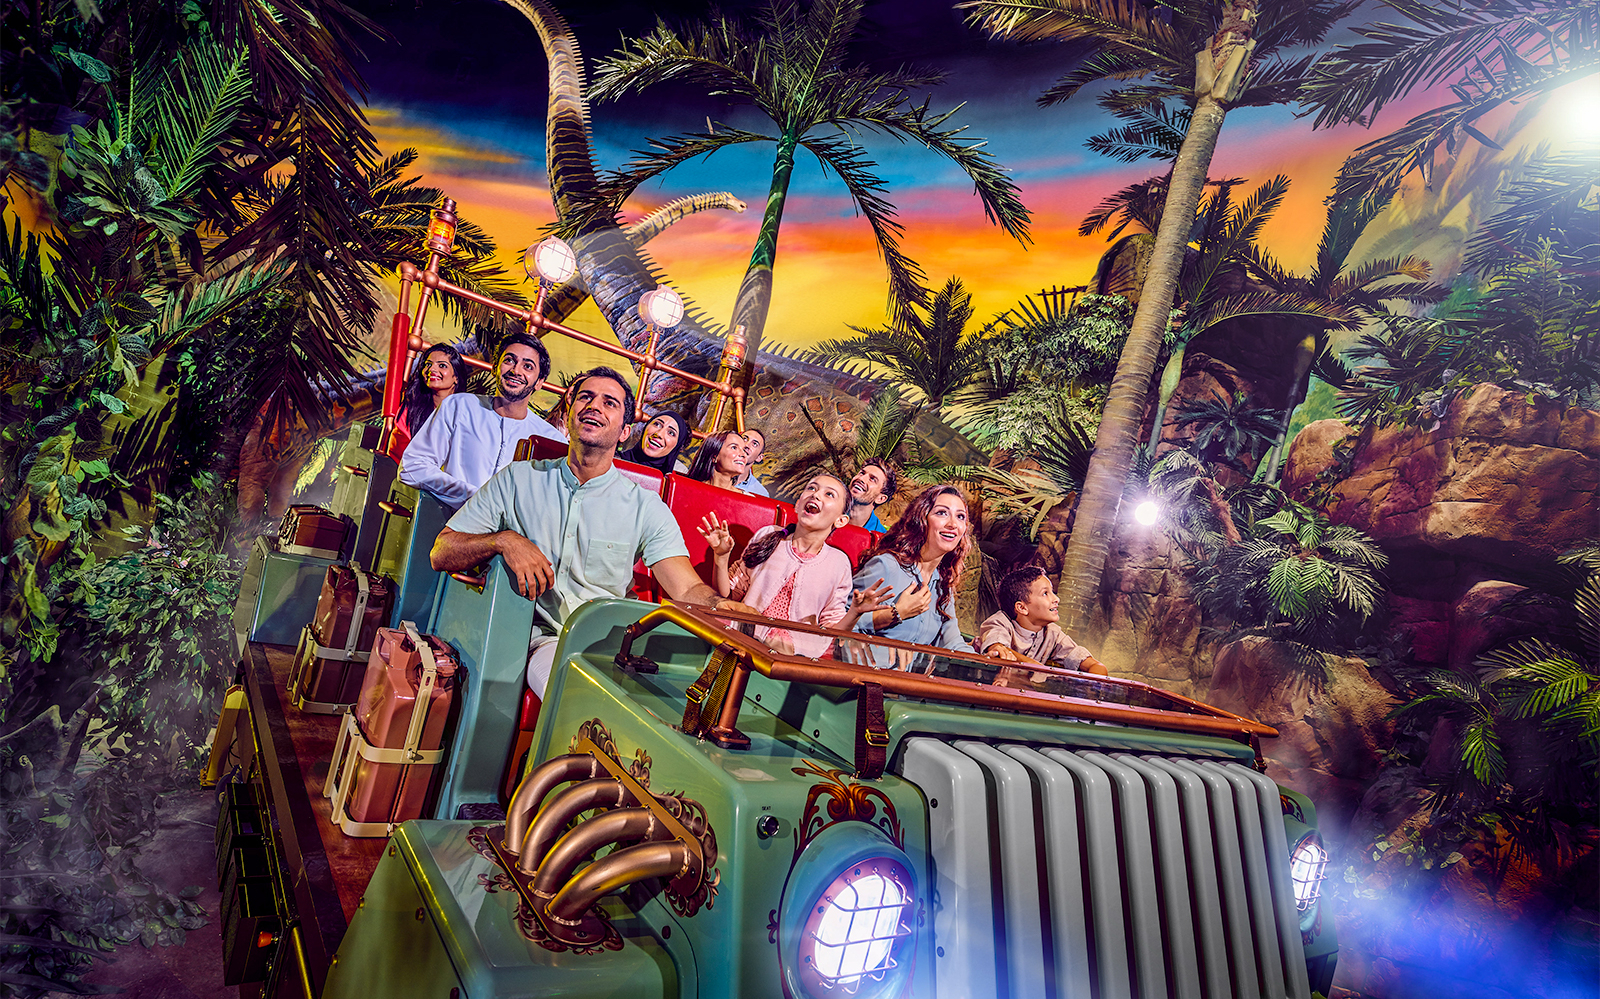 91f2efb6 c650 4b98 8547 768e149cdf4a 10432 dubai img worlds of adventure   uae resident offer 03